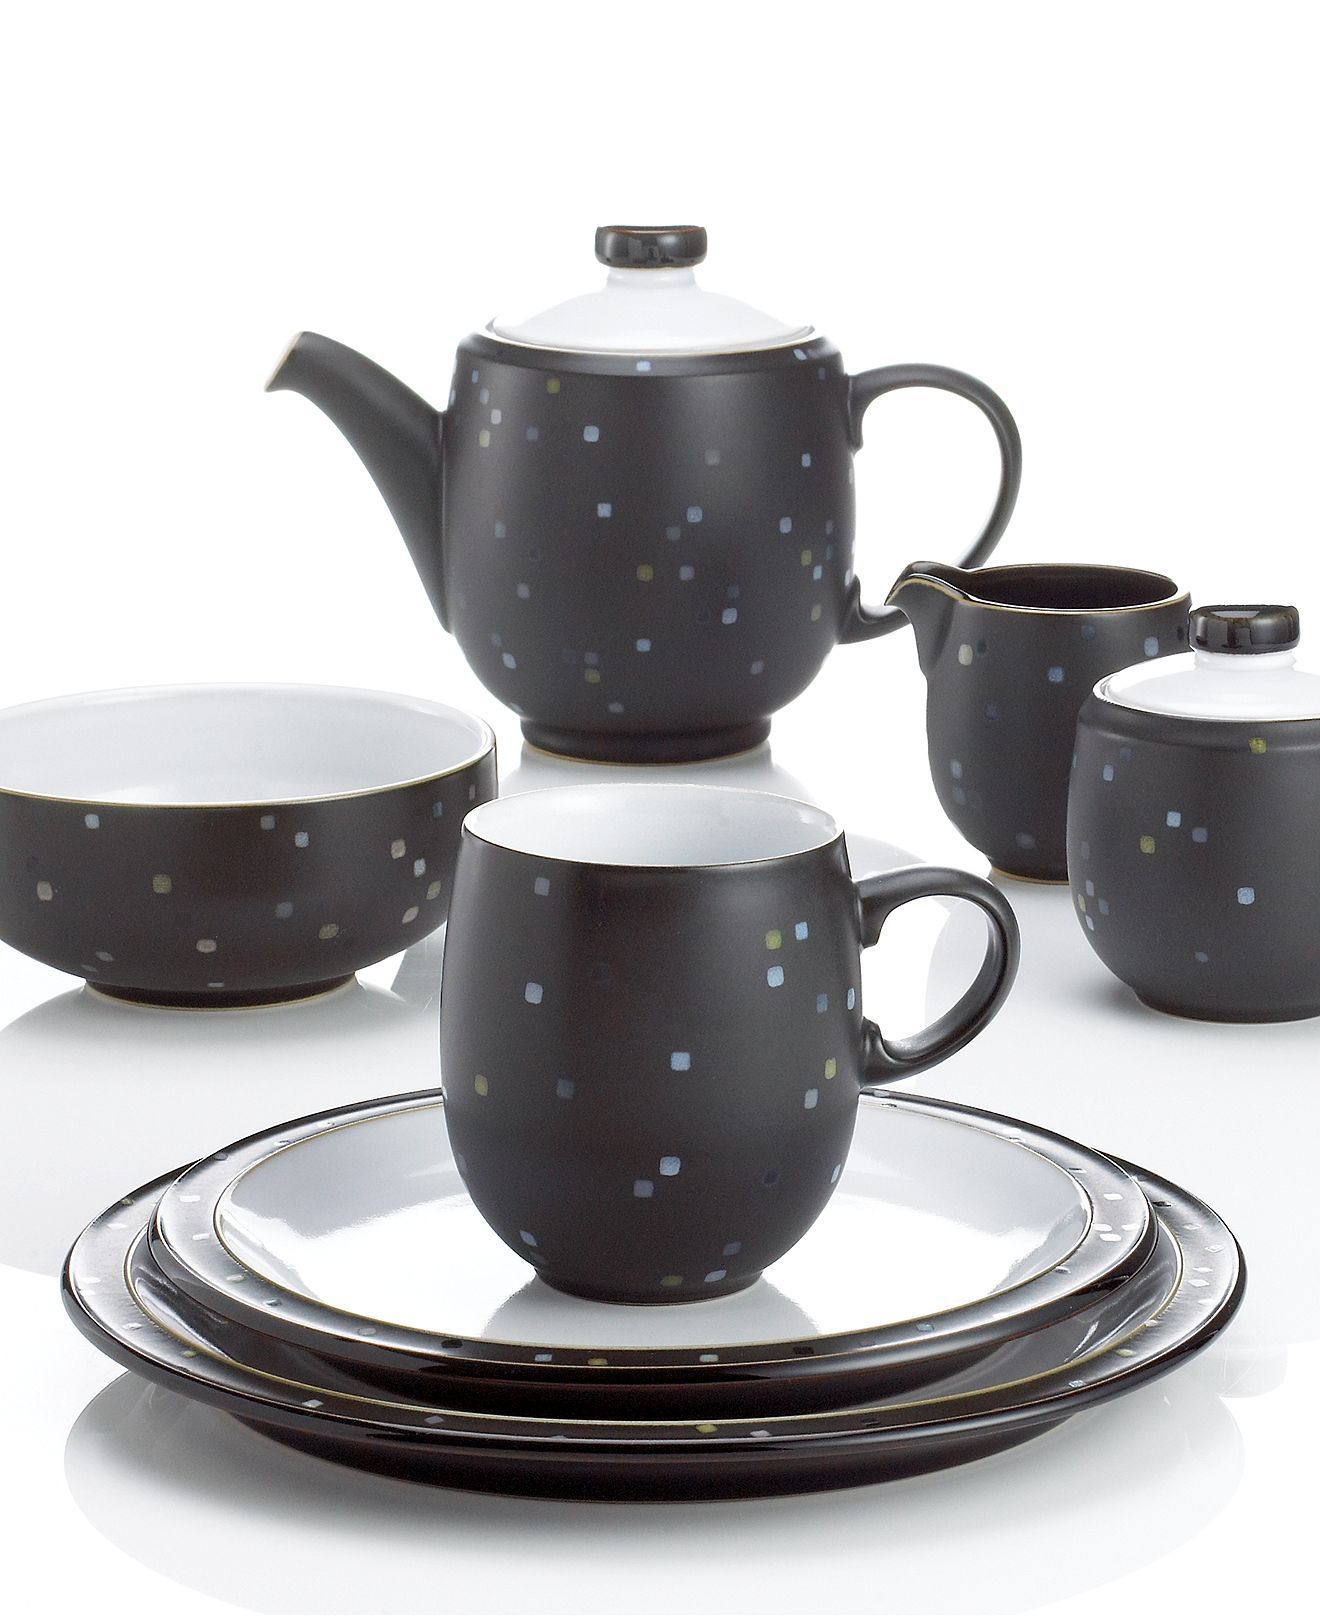 Denby Dinnerware Jet Skyline Collection - Casual Dinnerware - Dining \u0026 Entertaining - Macy\u0027s  sc 1 st  Pinterest & Denby Dinnerware Jet Skyline Collection - Casual Dinnerware ...